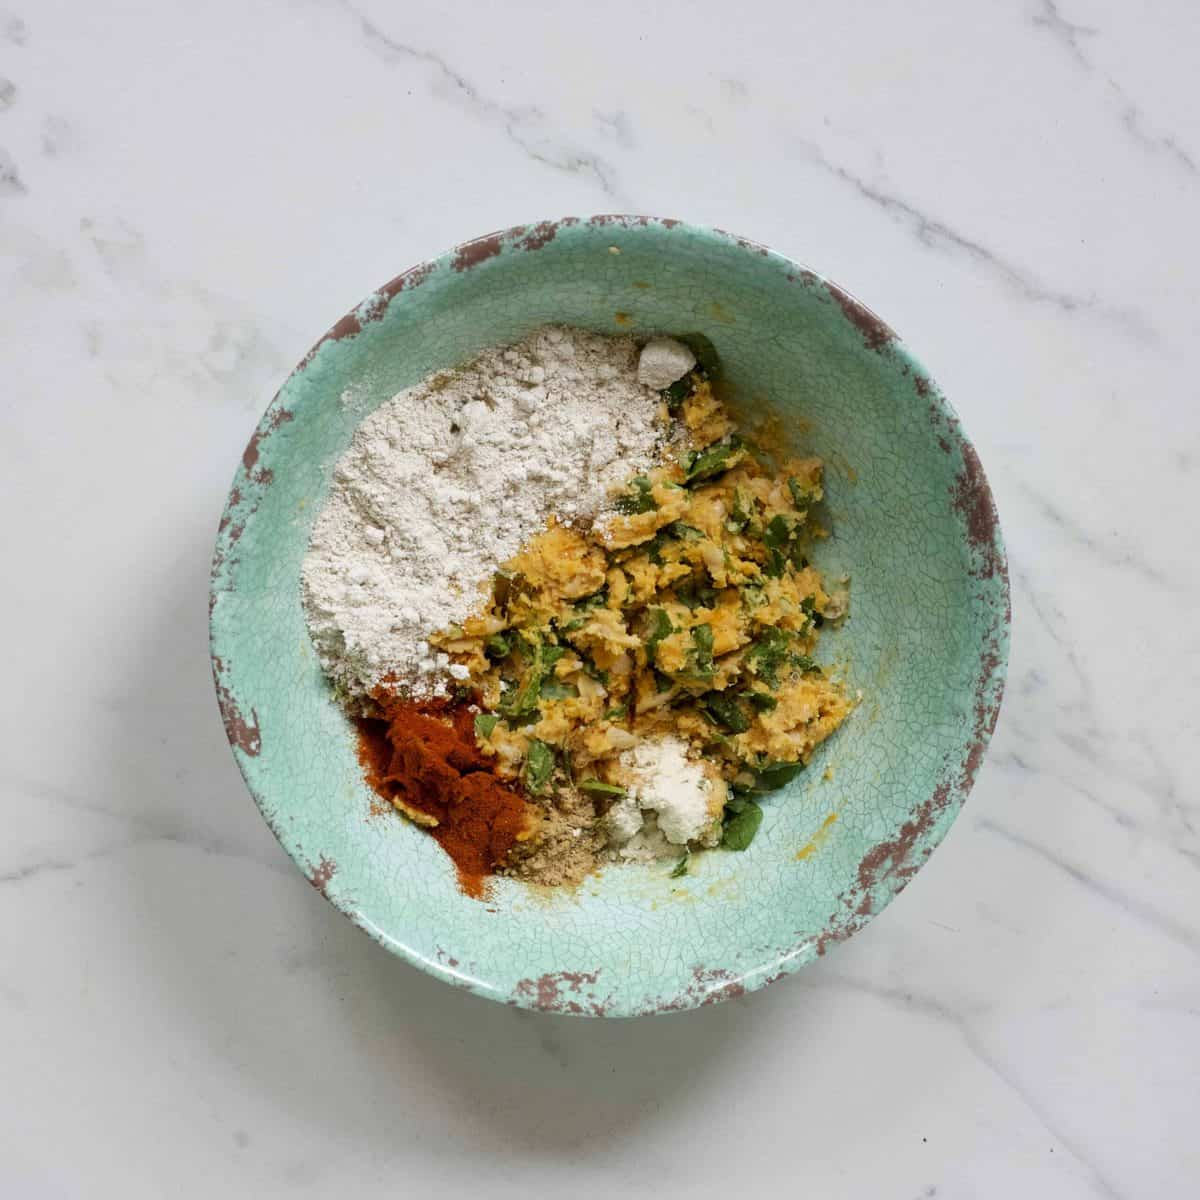 Mixing sweet potato with spices and flour